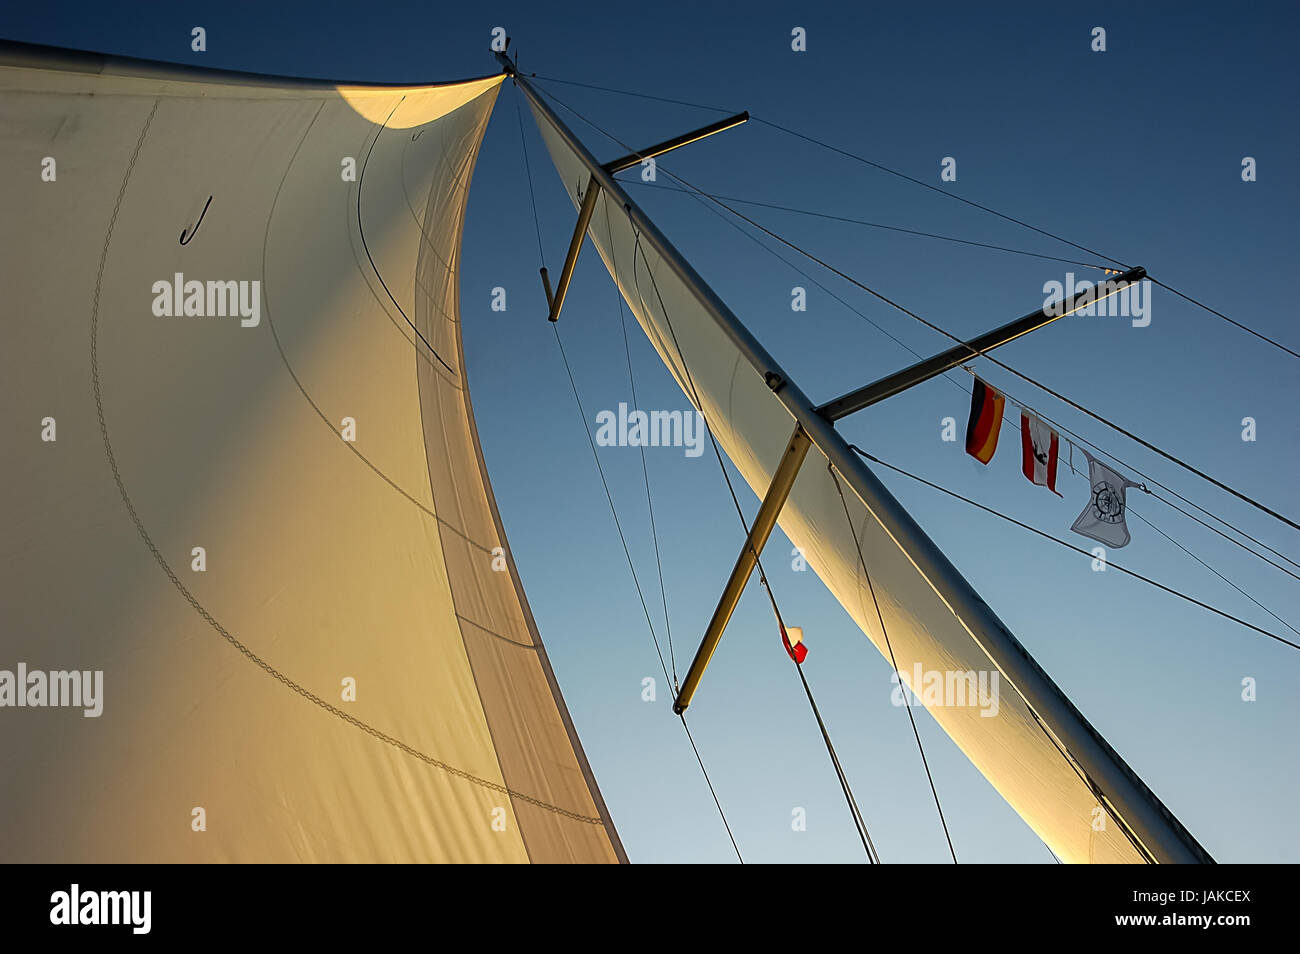 sails in the sunset - Stock Image